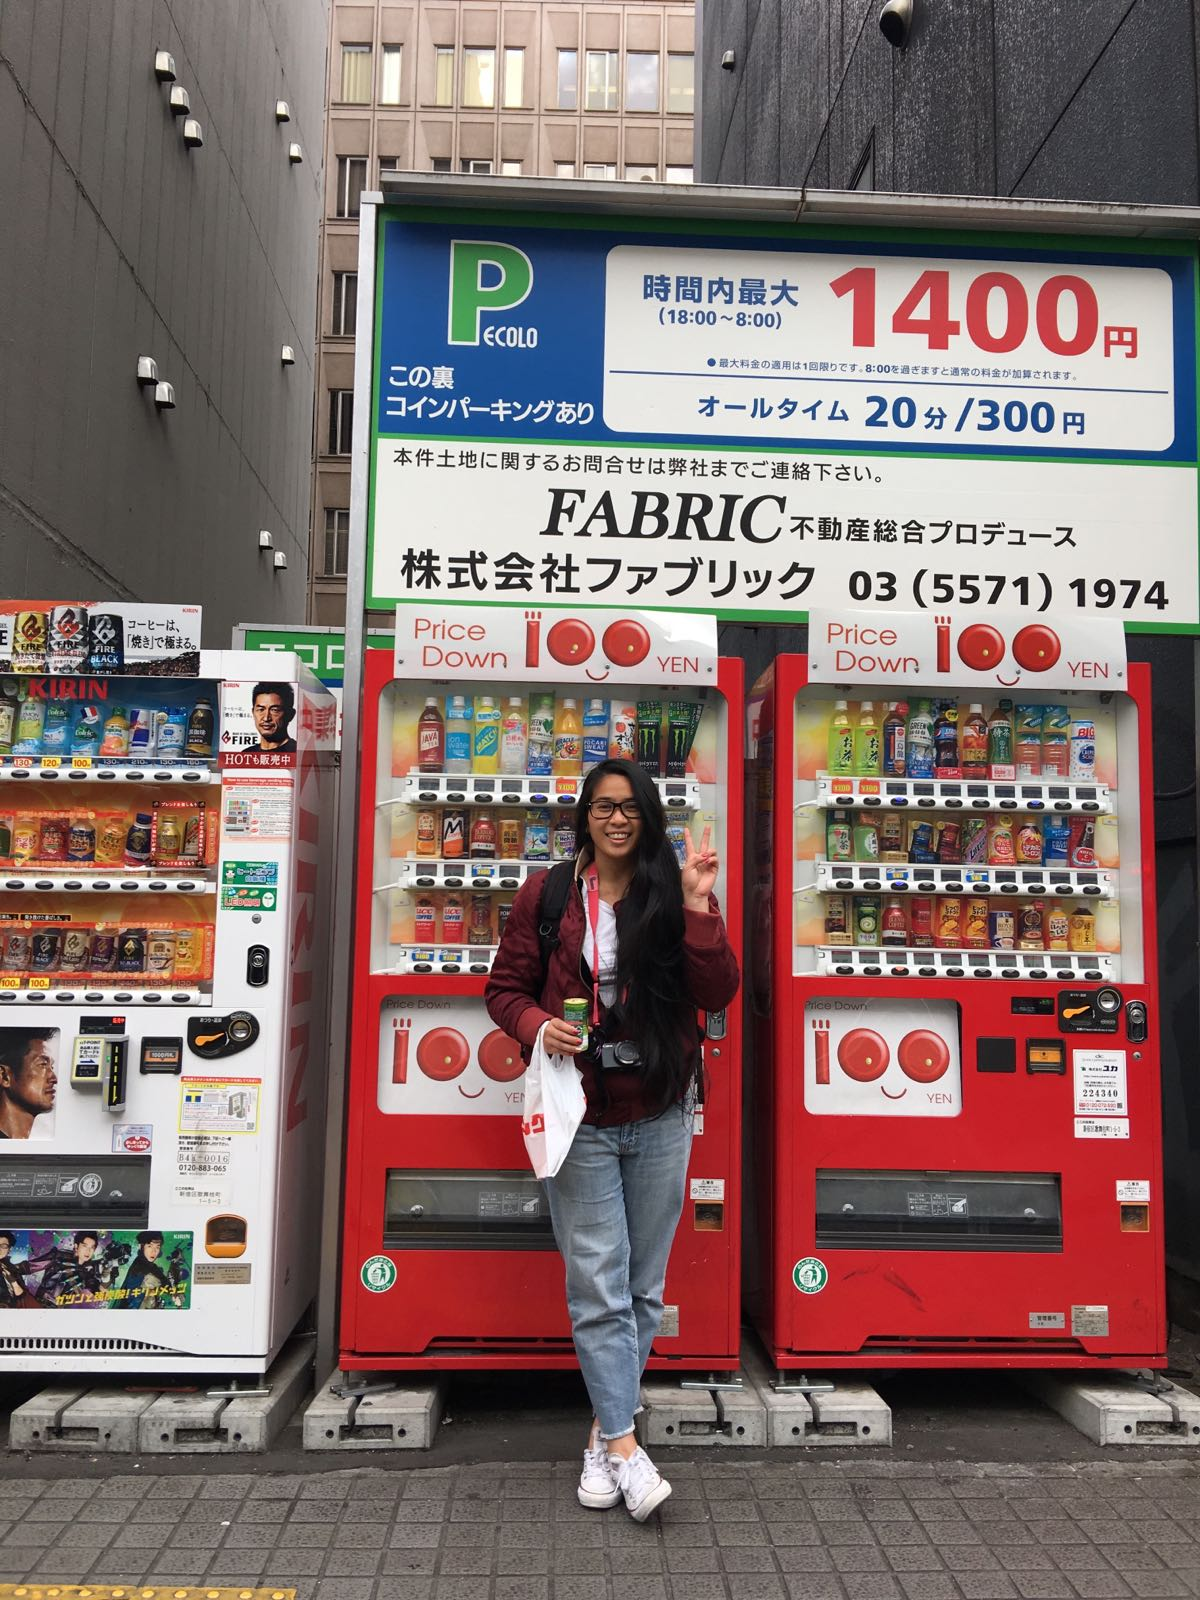 tokyo travel guide drinks vending machine ootd japan